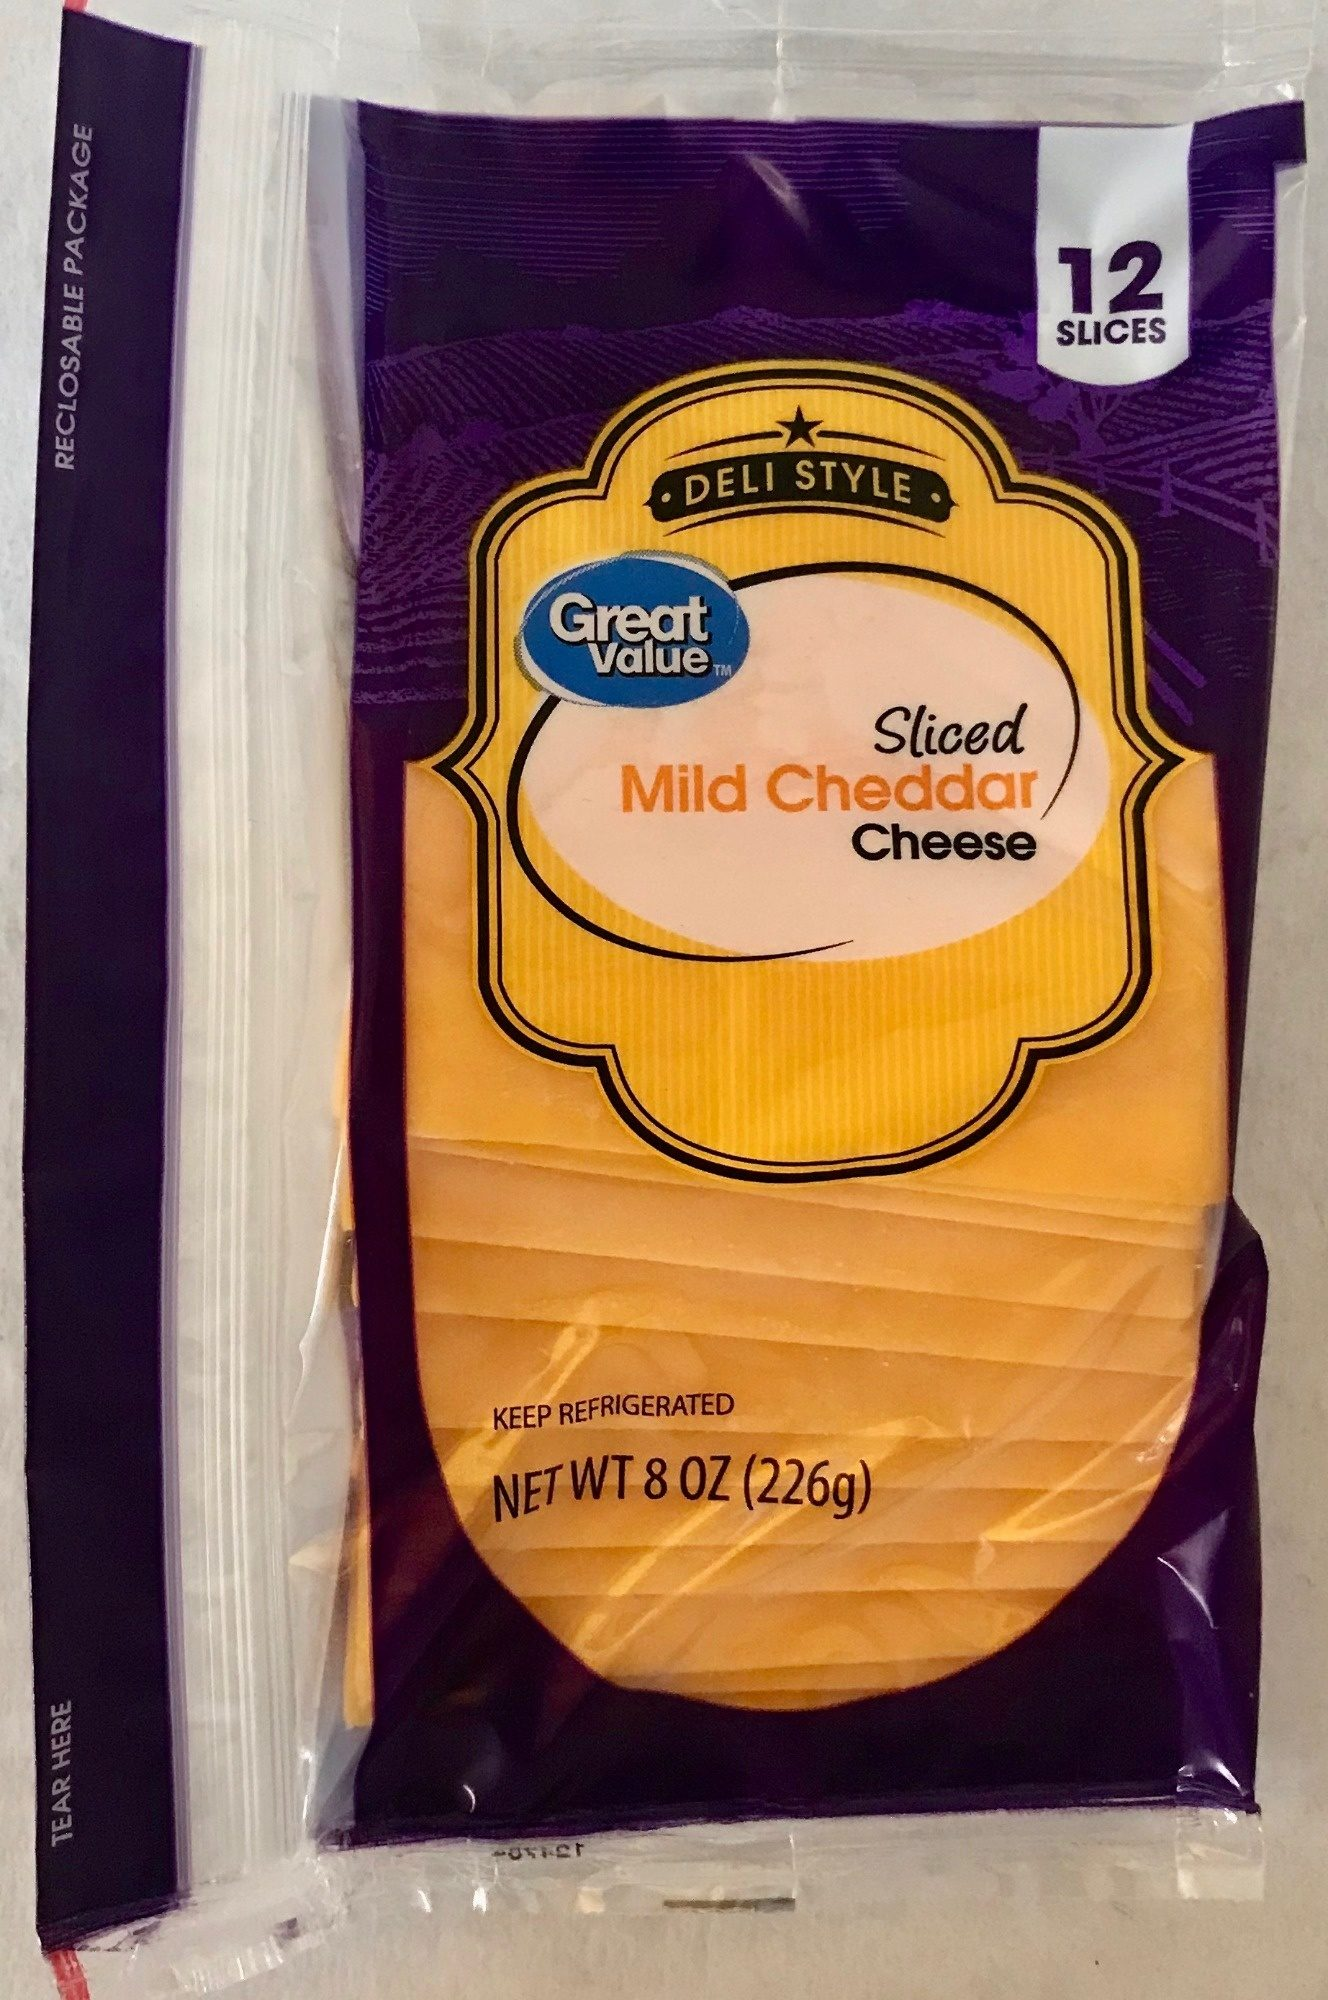 Deli Style Sliced Mild Cheddar Cheese - Product - en